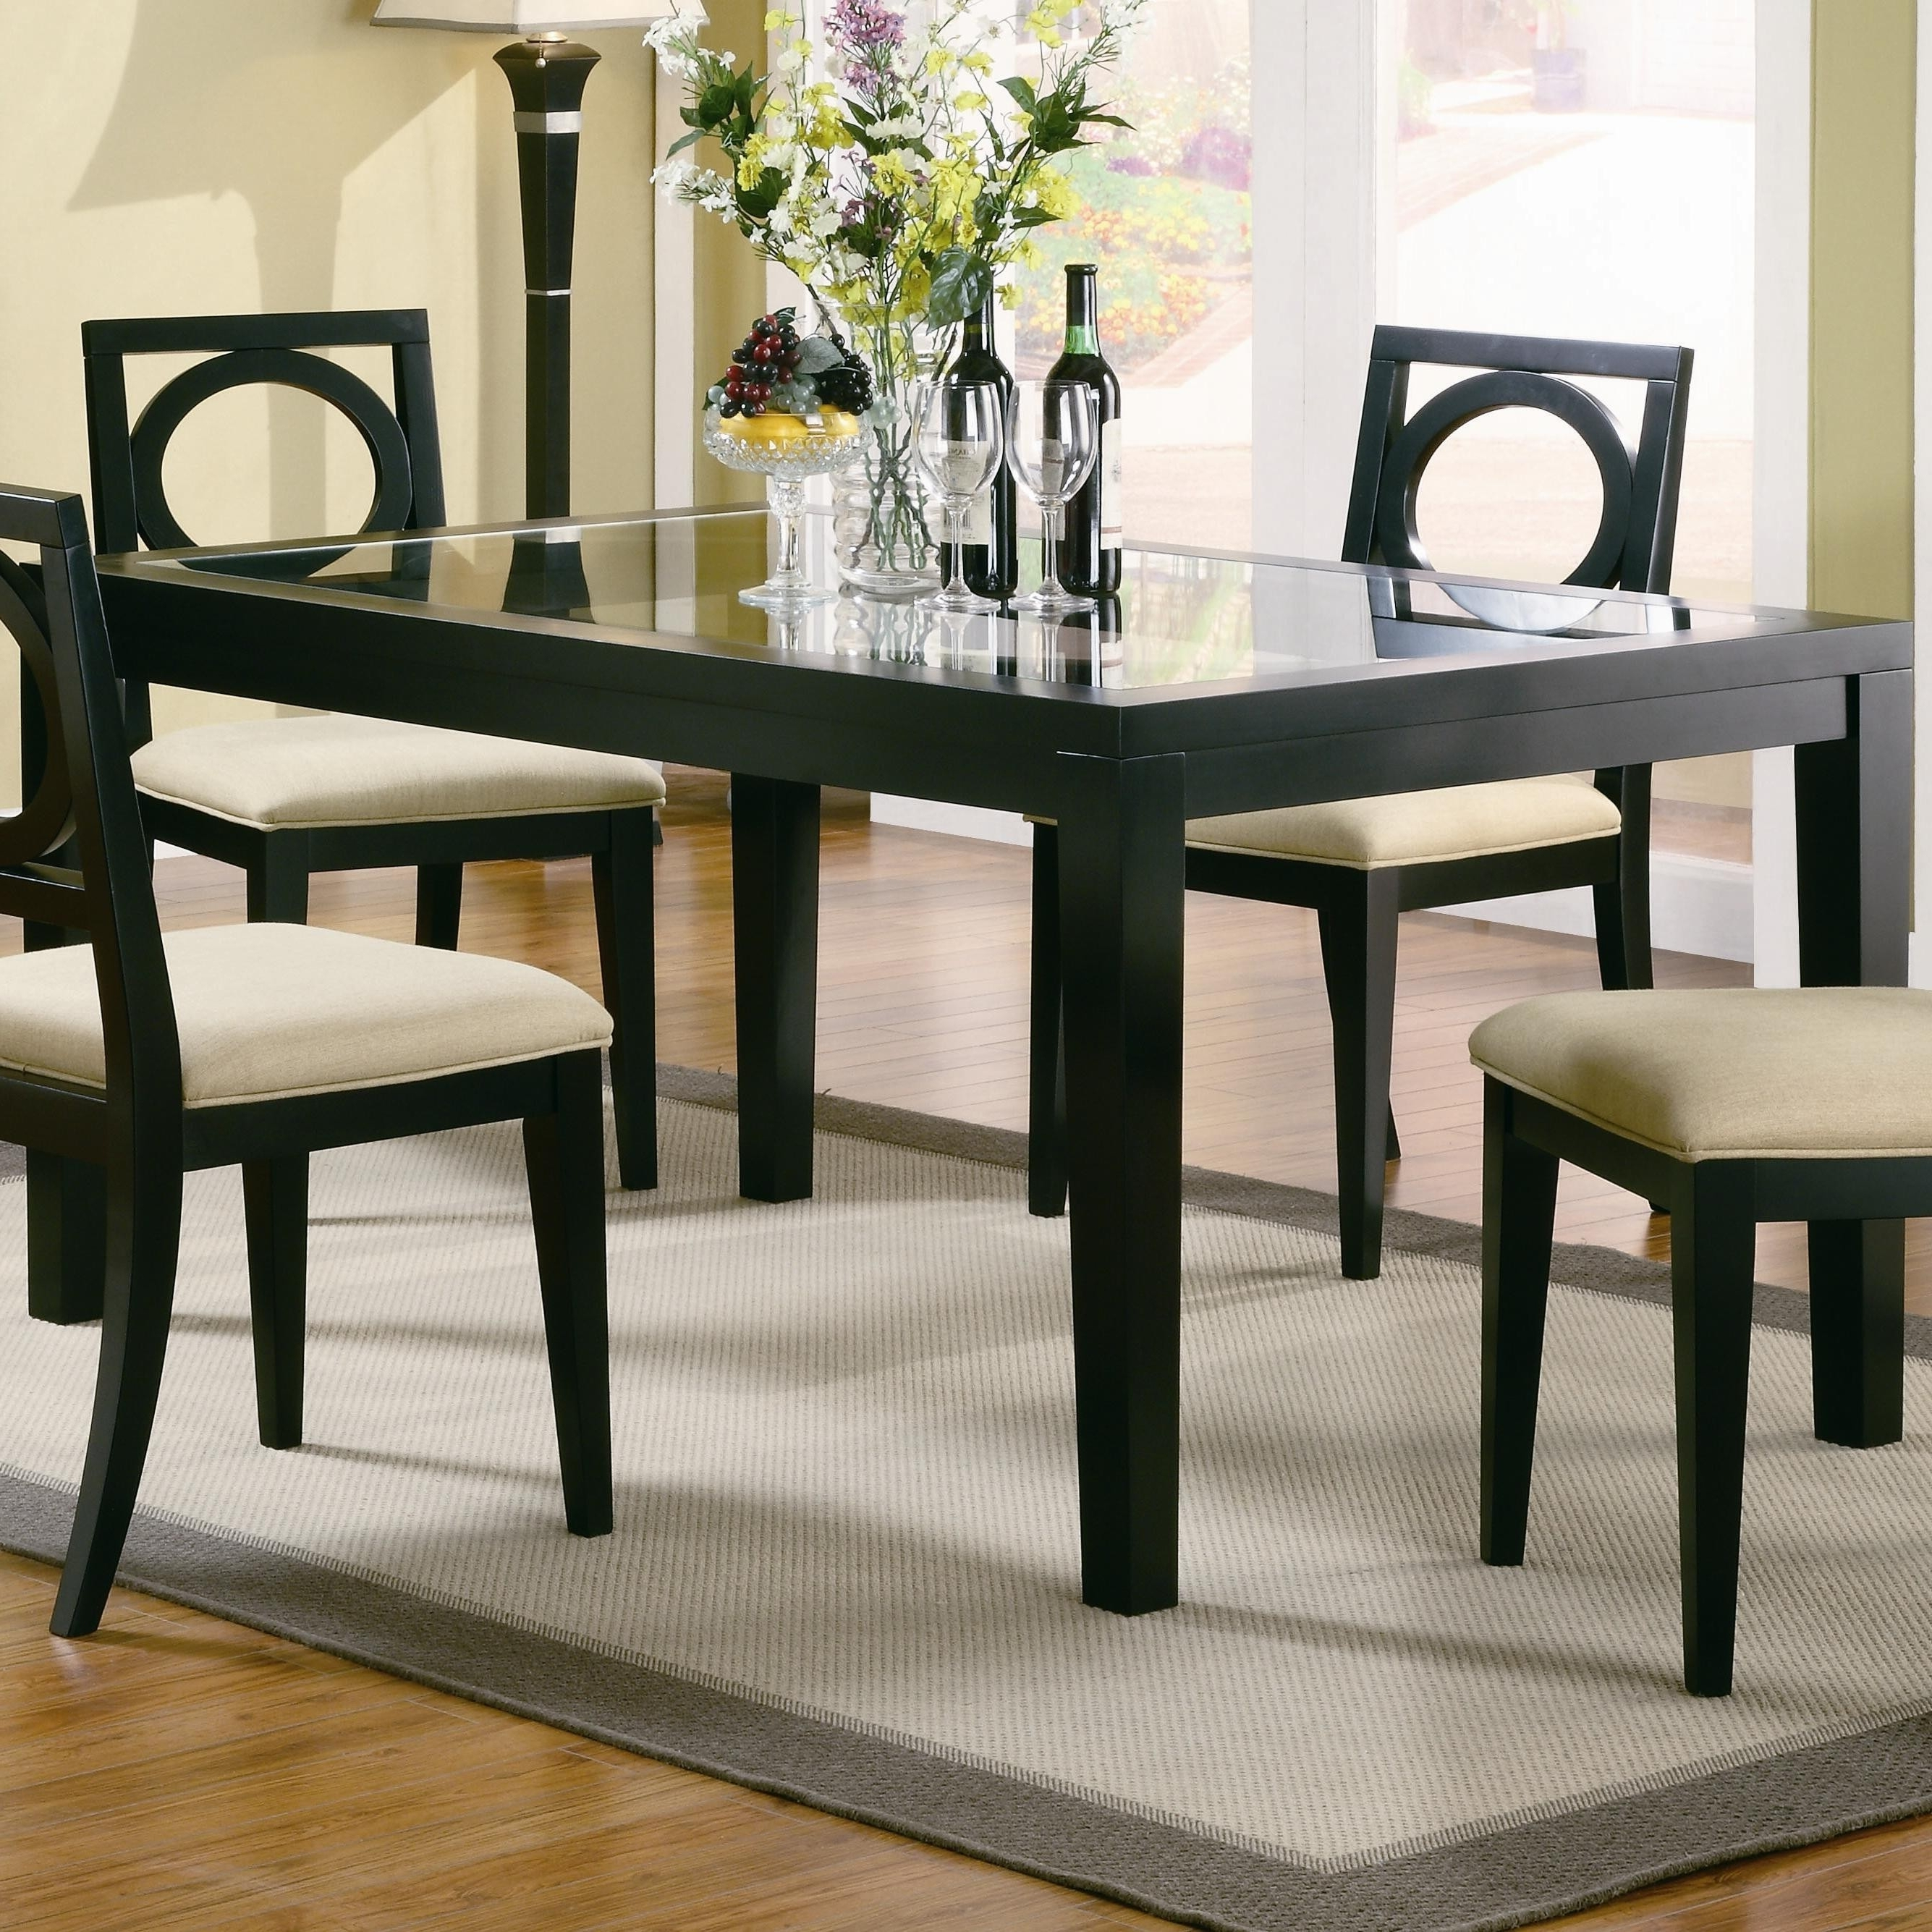 Trendy Glass Dining Tables With Oak Legs Intended For Glass Dining Room Sets Plans – Catpillow (View 21 of 25)